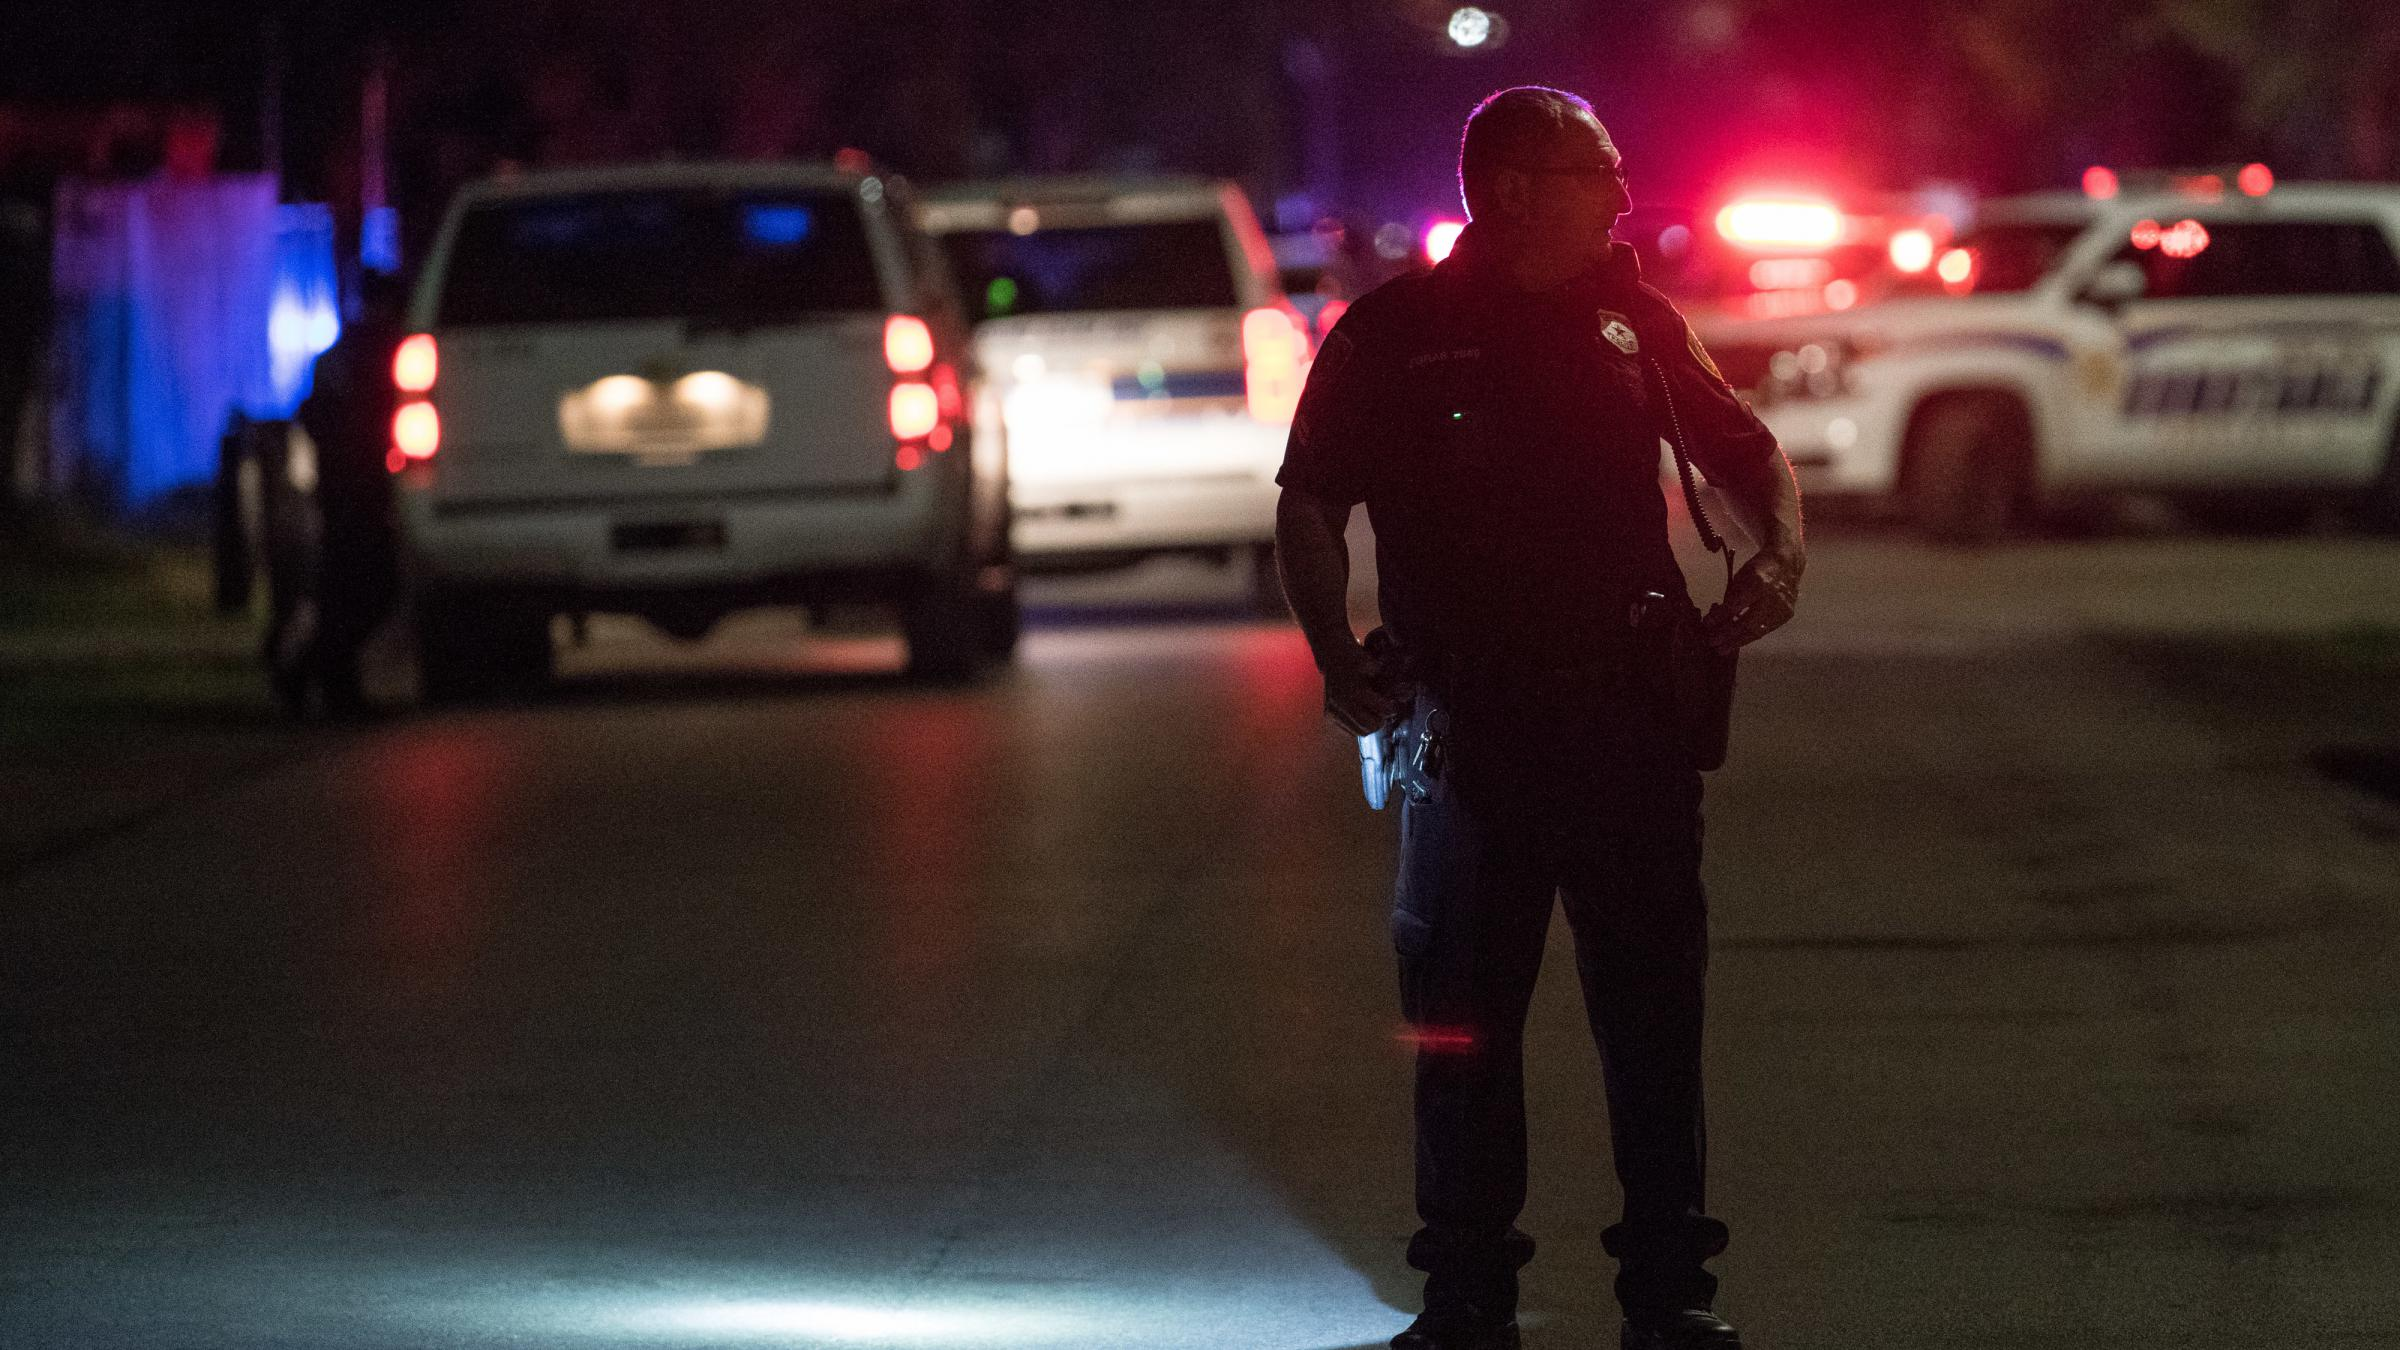 4 Houston Police Officers Shot, Another Injured In Drug Raid